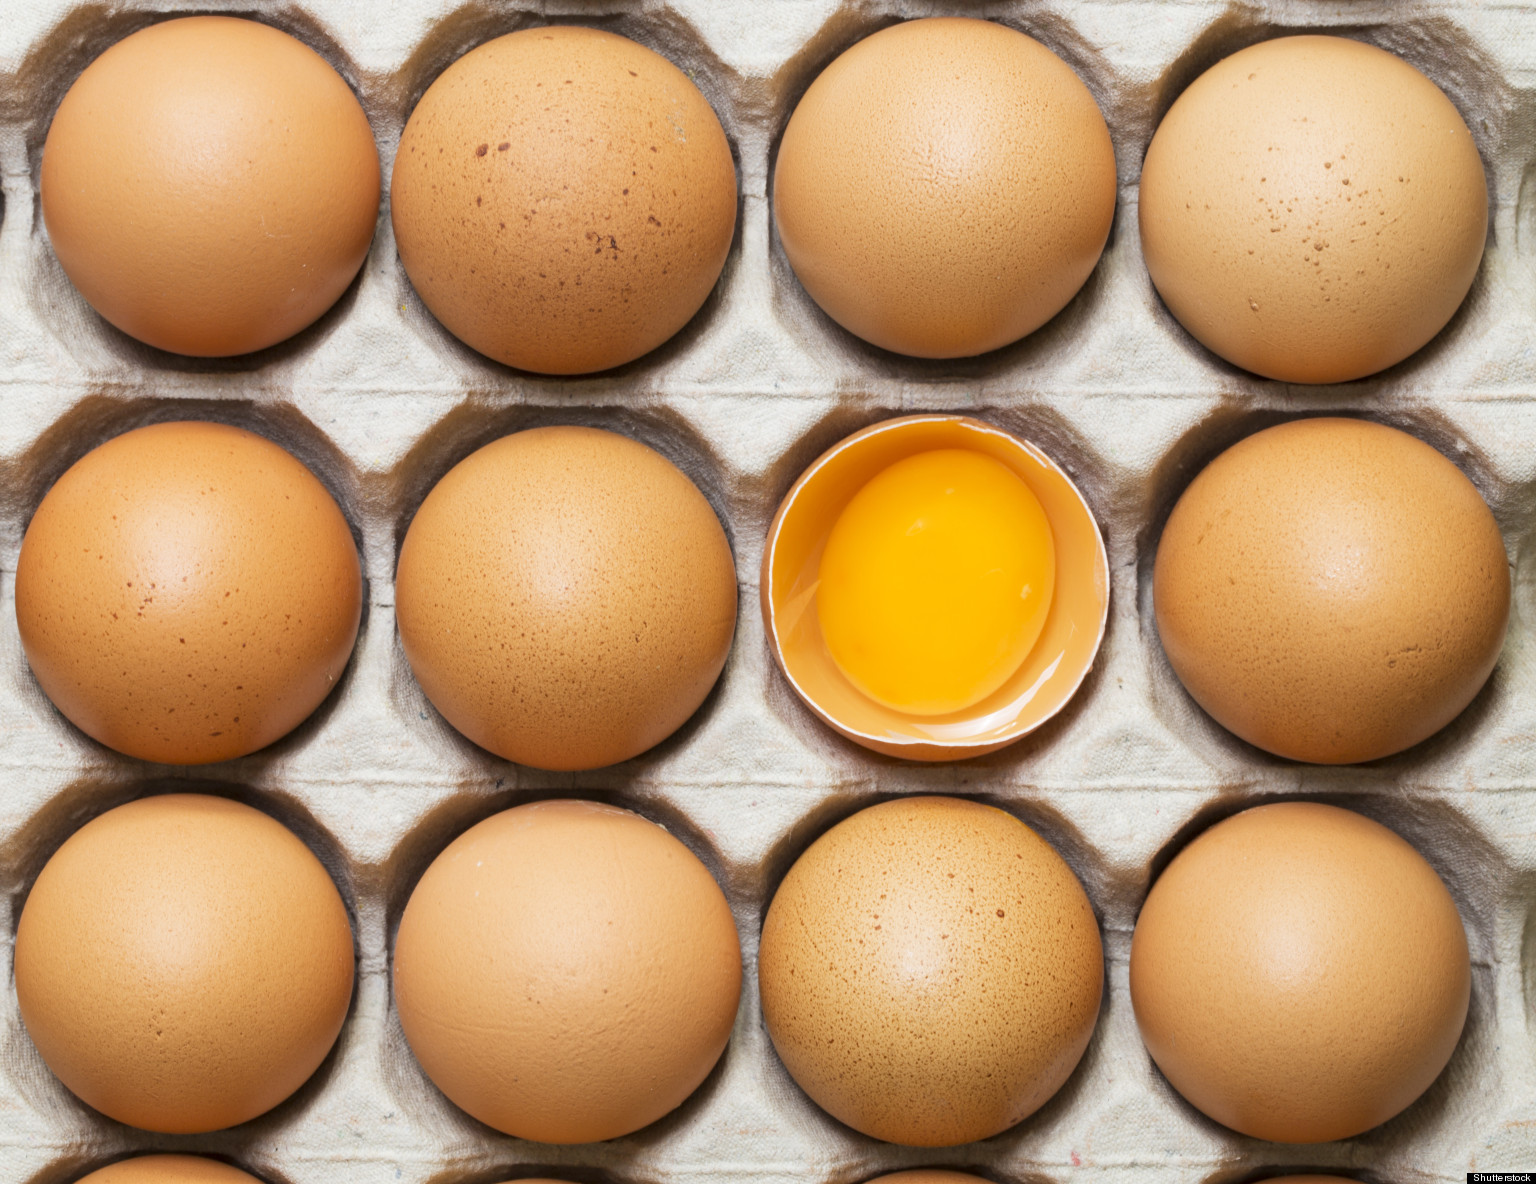 Health Benefits Of Eggs | The Huffington Post